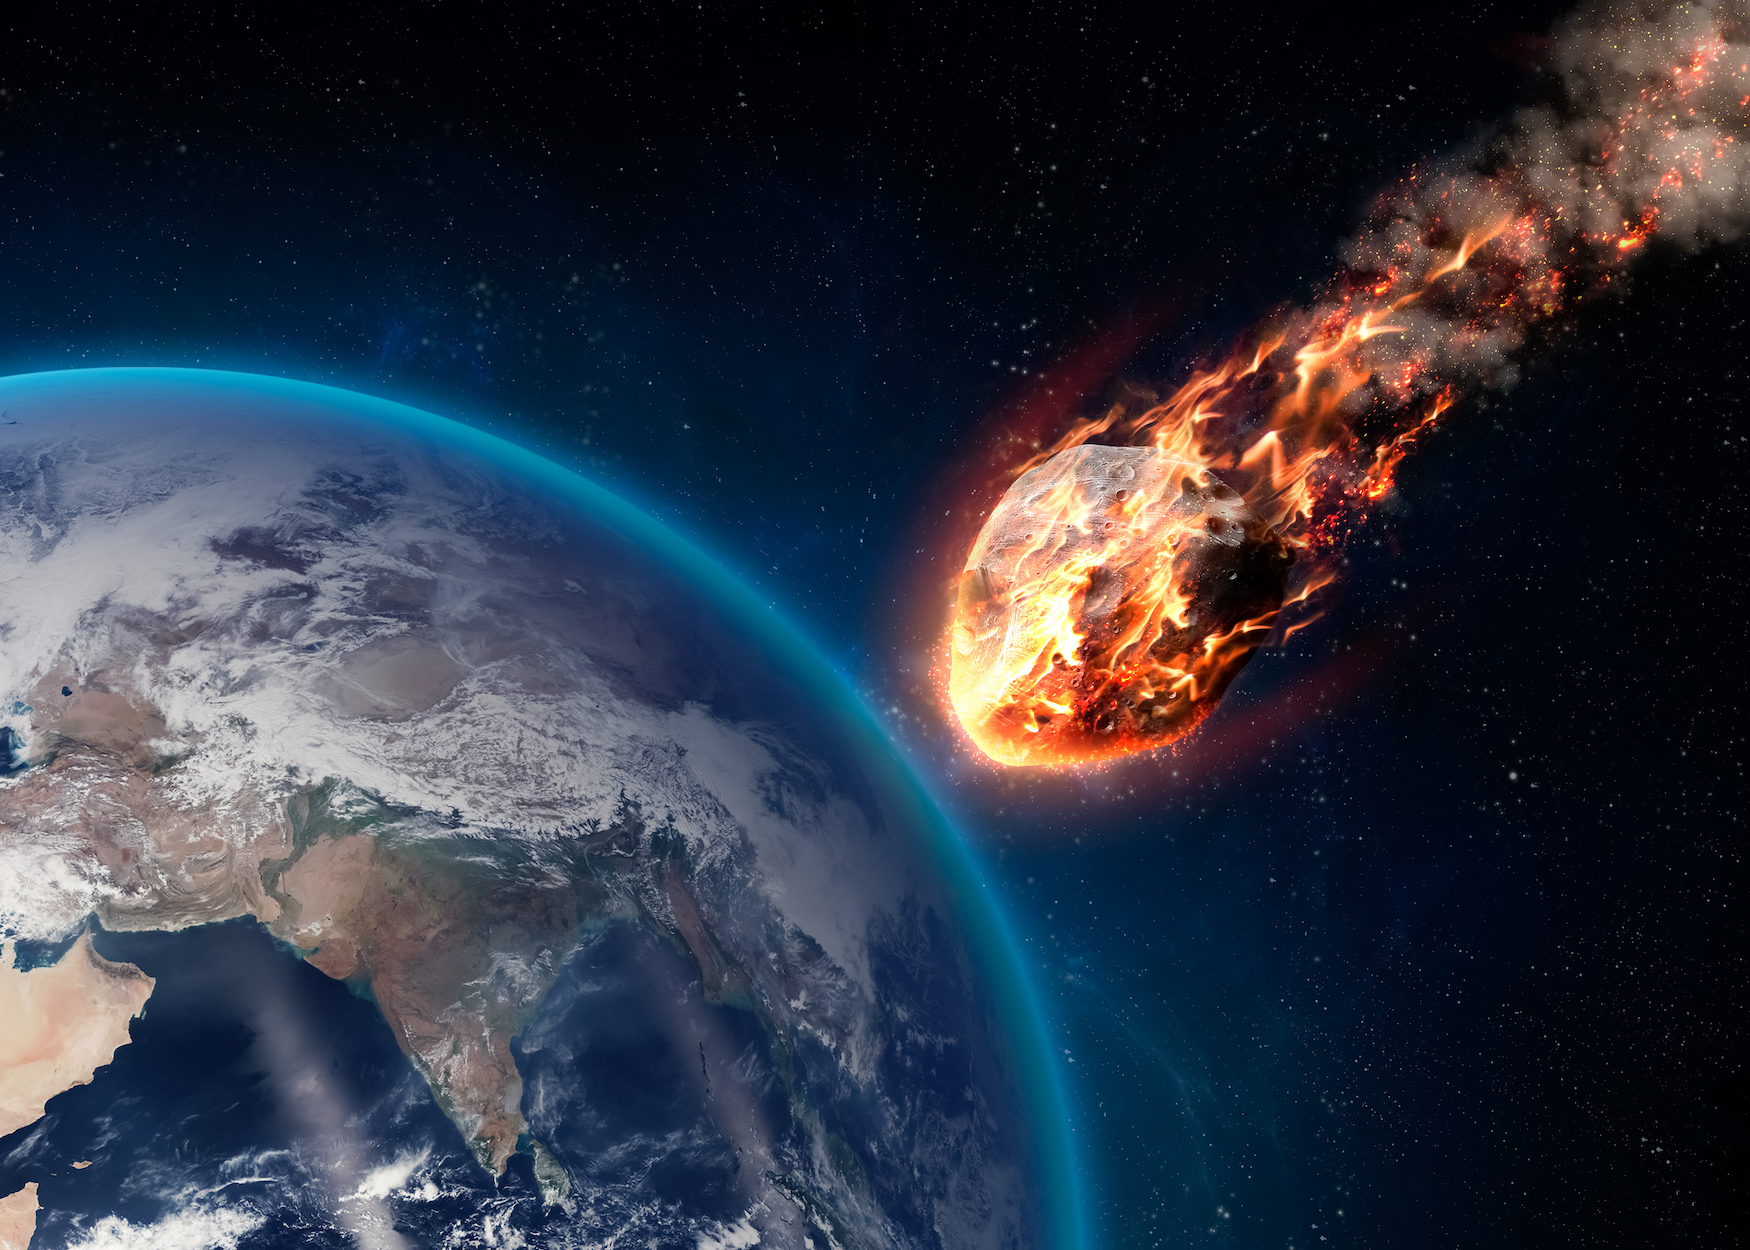 Earth's atmosphere works as a natural shield, and the force of air pushing against the meteoroid causes it to crack and explode.